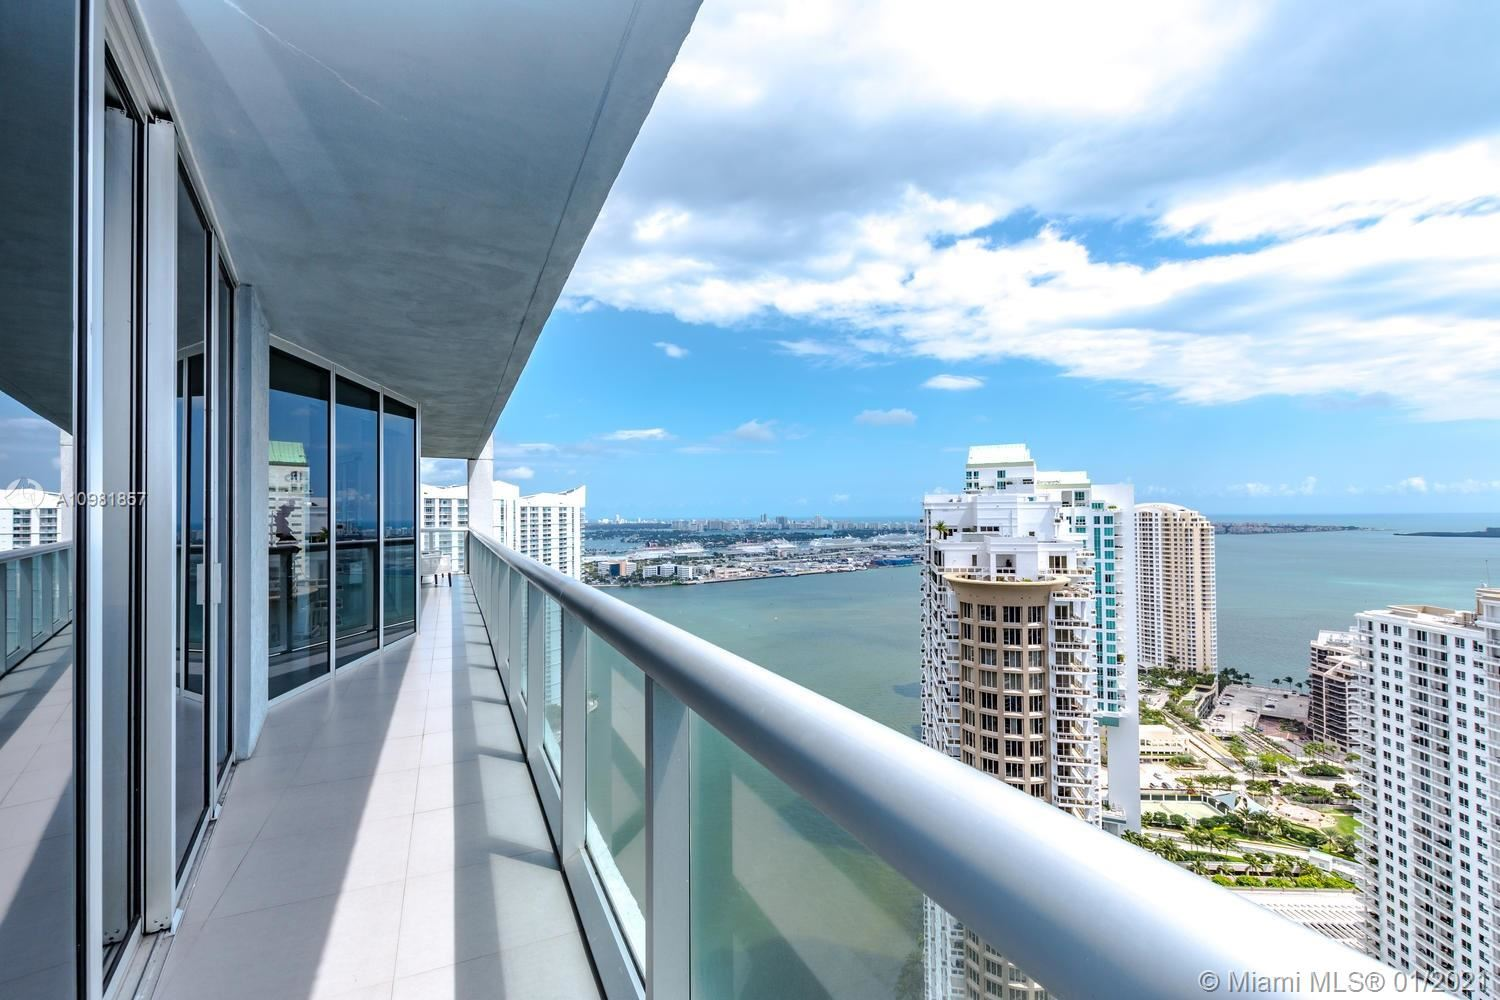 465 BRICKELL AVE #3901, Miami, FL 33131 - #: A10981857